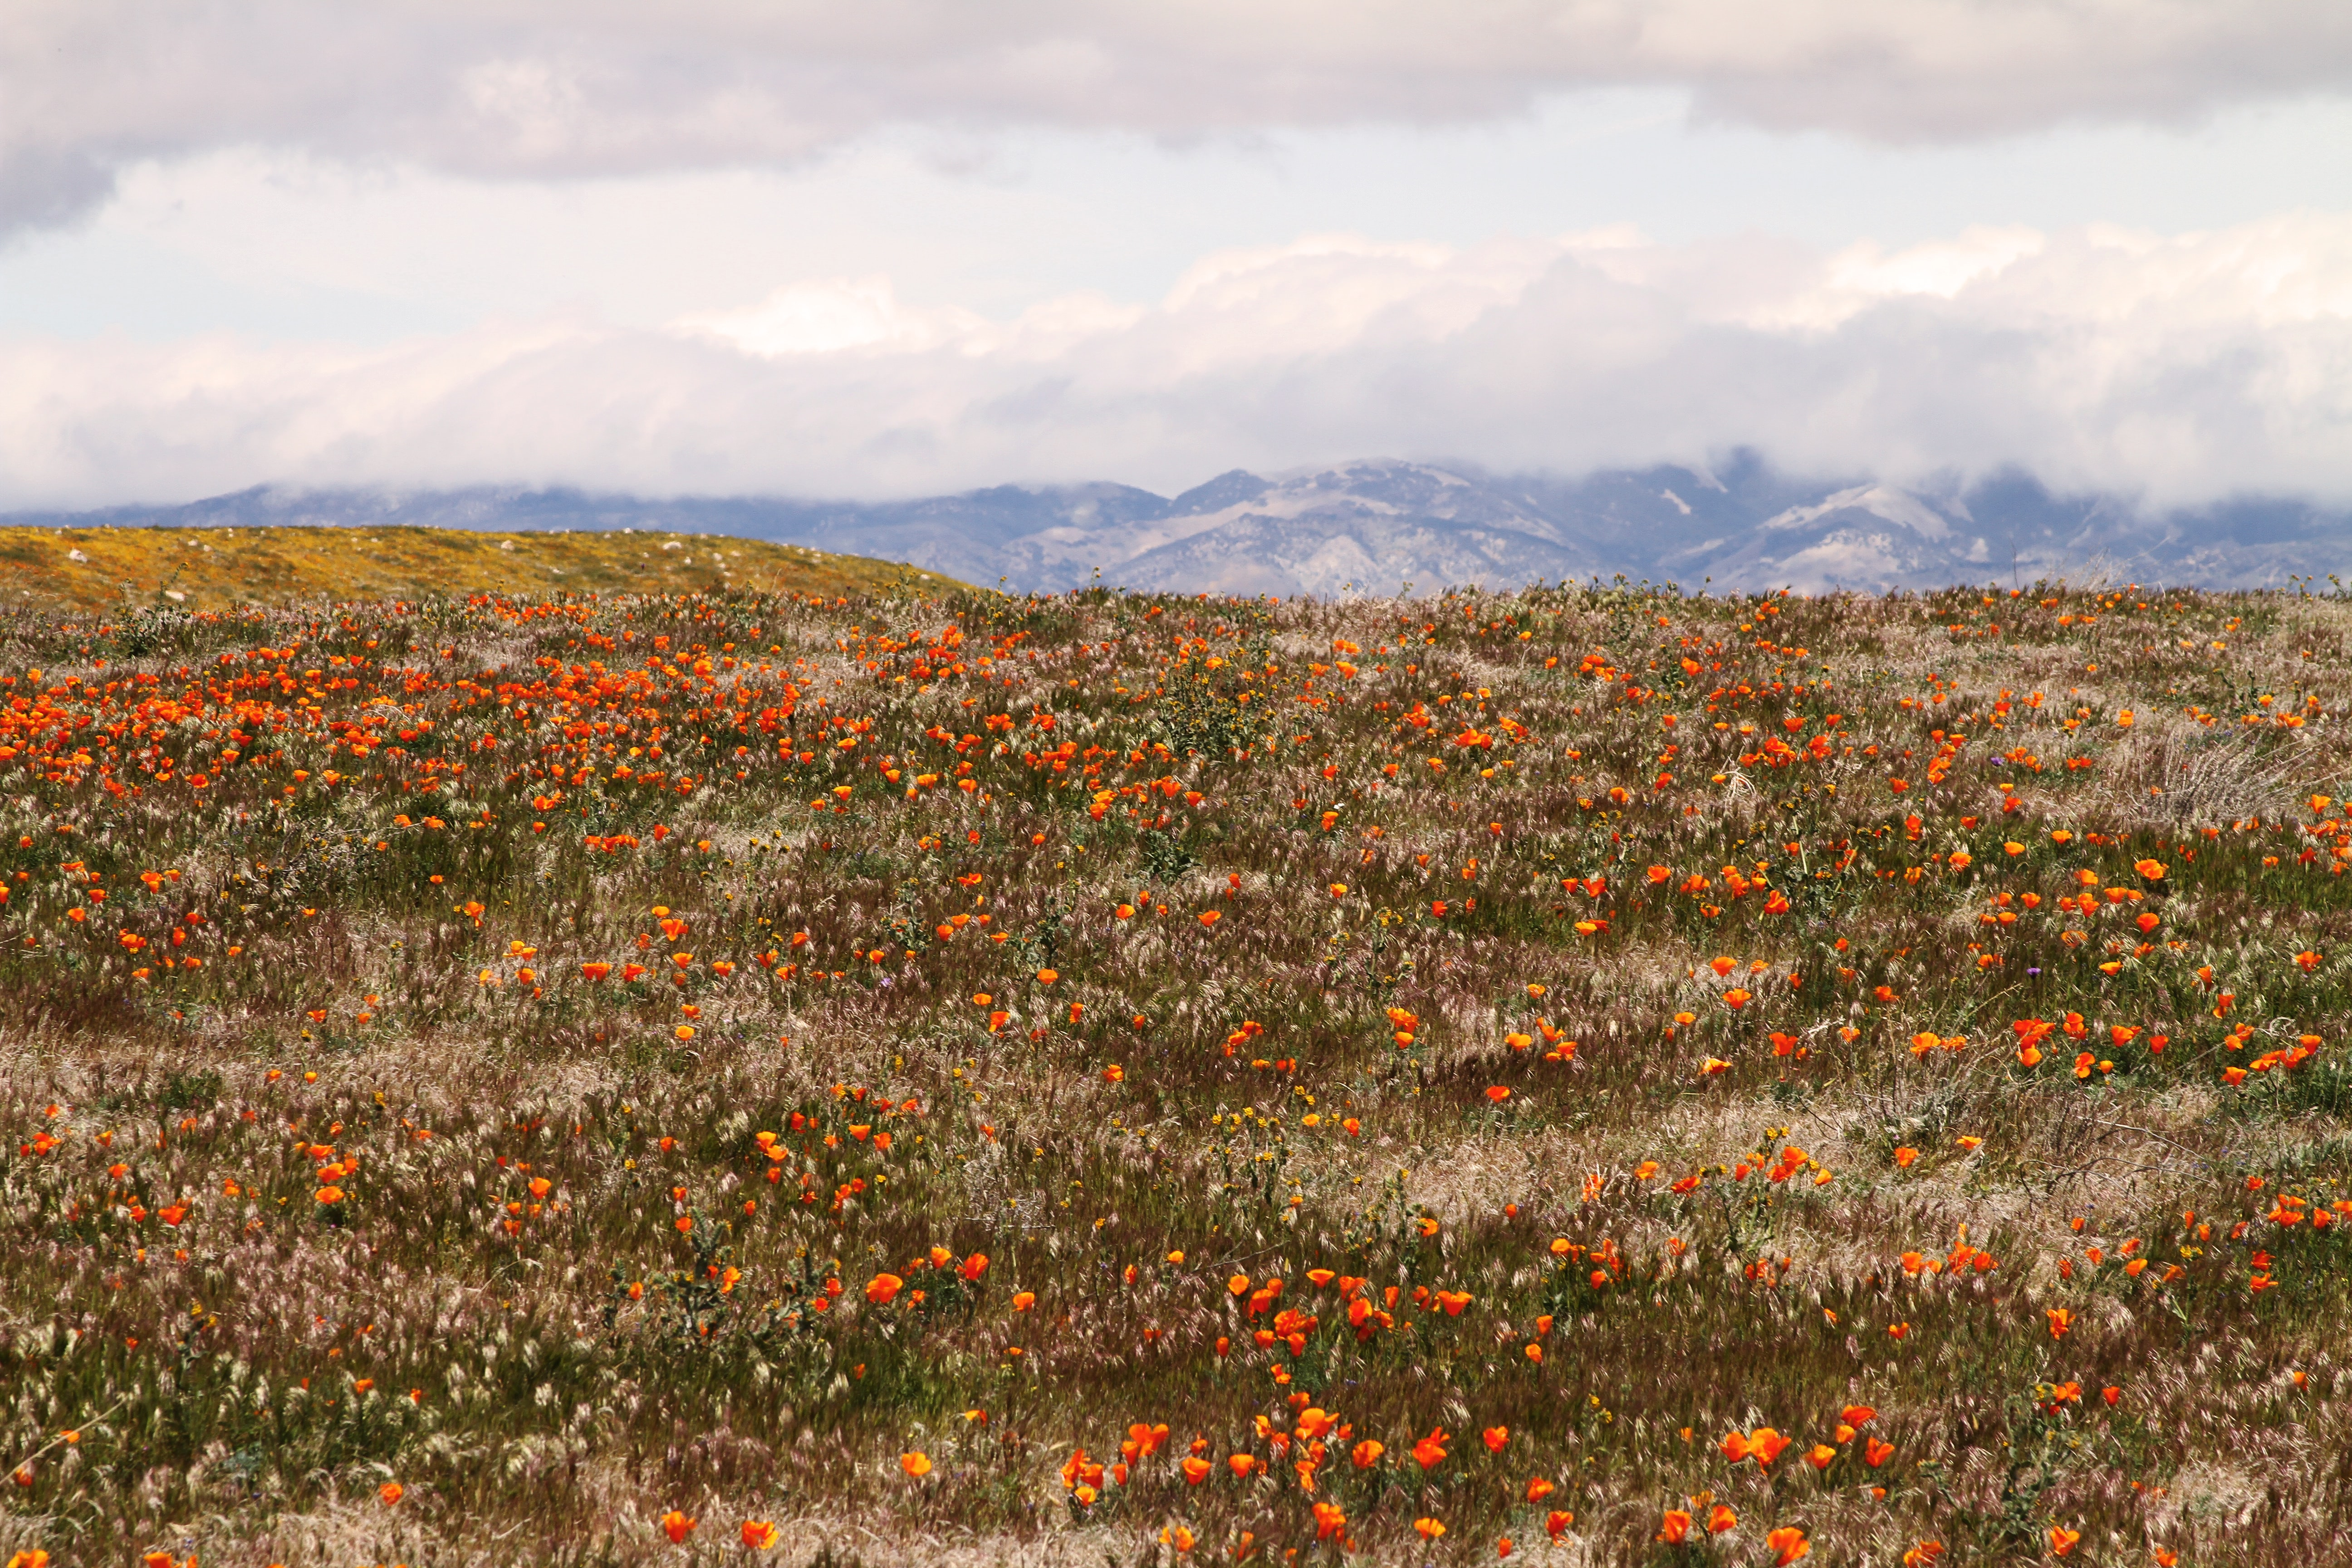 A meadow full of orange tulips with a mountain range on the horizon